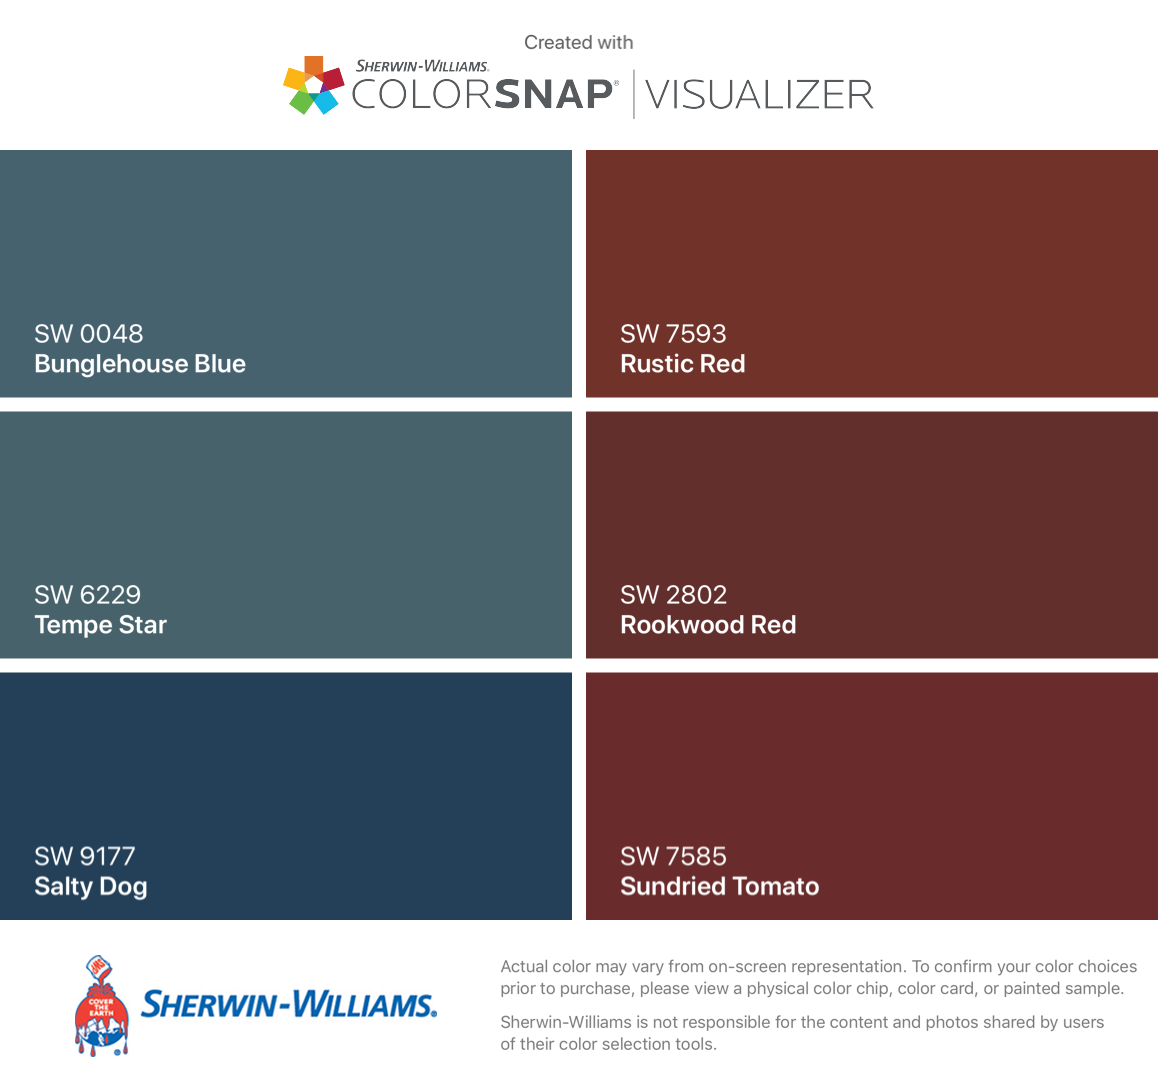 I Found These Colors With Colorsnap Visualizer For Iphone By Sherwin Williams Bunglehouse Blue Sw 0048 Tempe Star S Color Chip Salty Dog Sherwin Williams